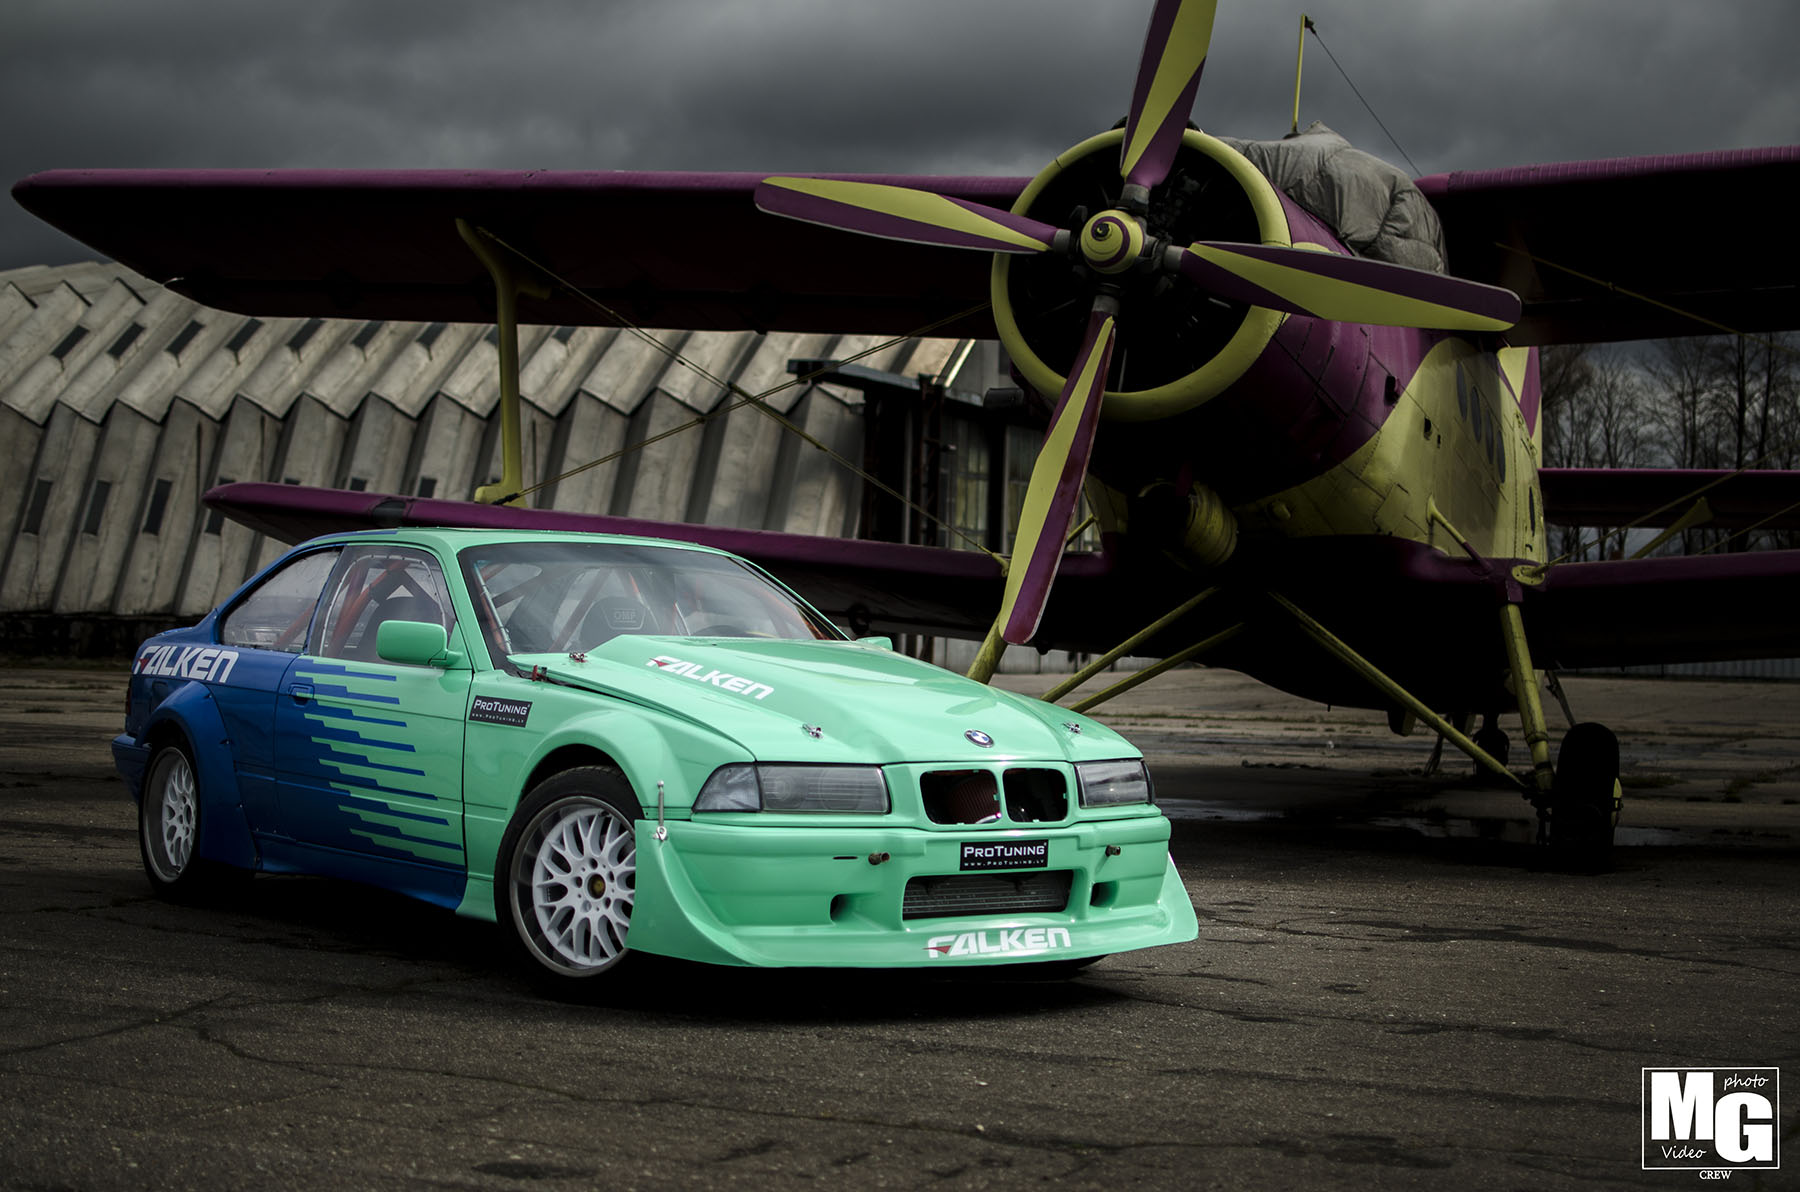 Bmw E36 With A M73 V12 Engine Swap Depot